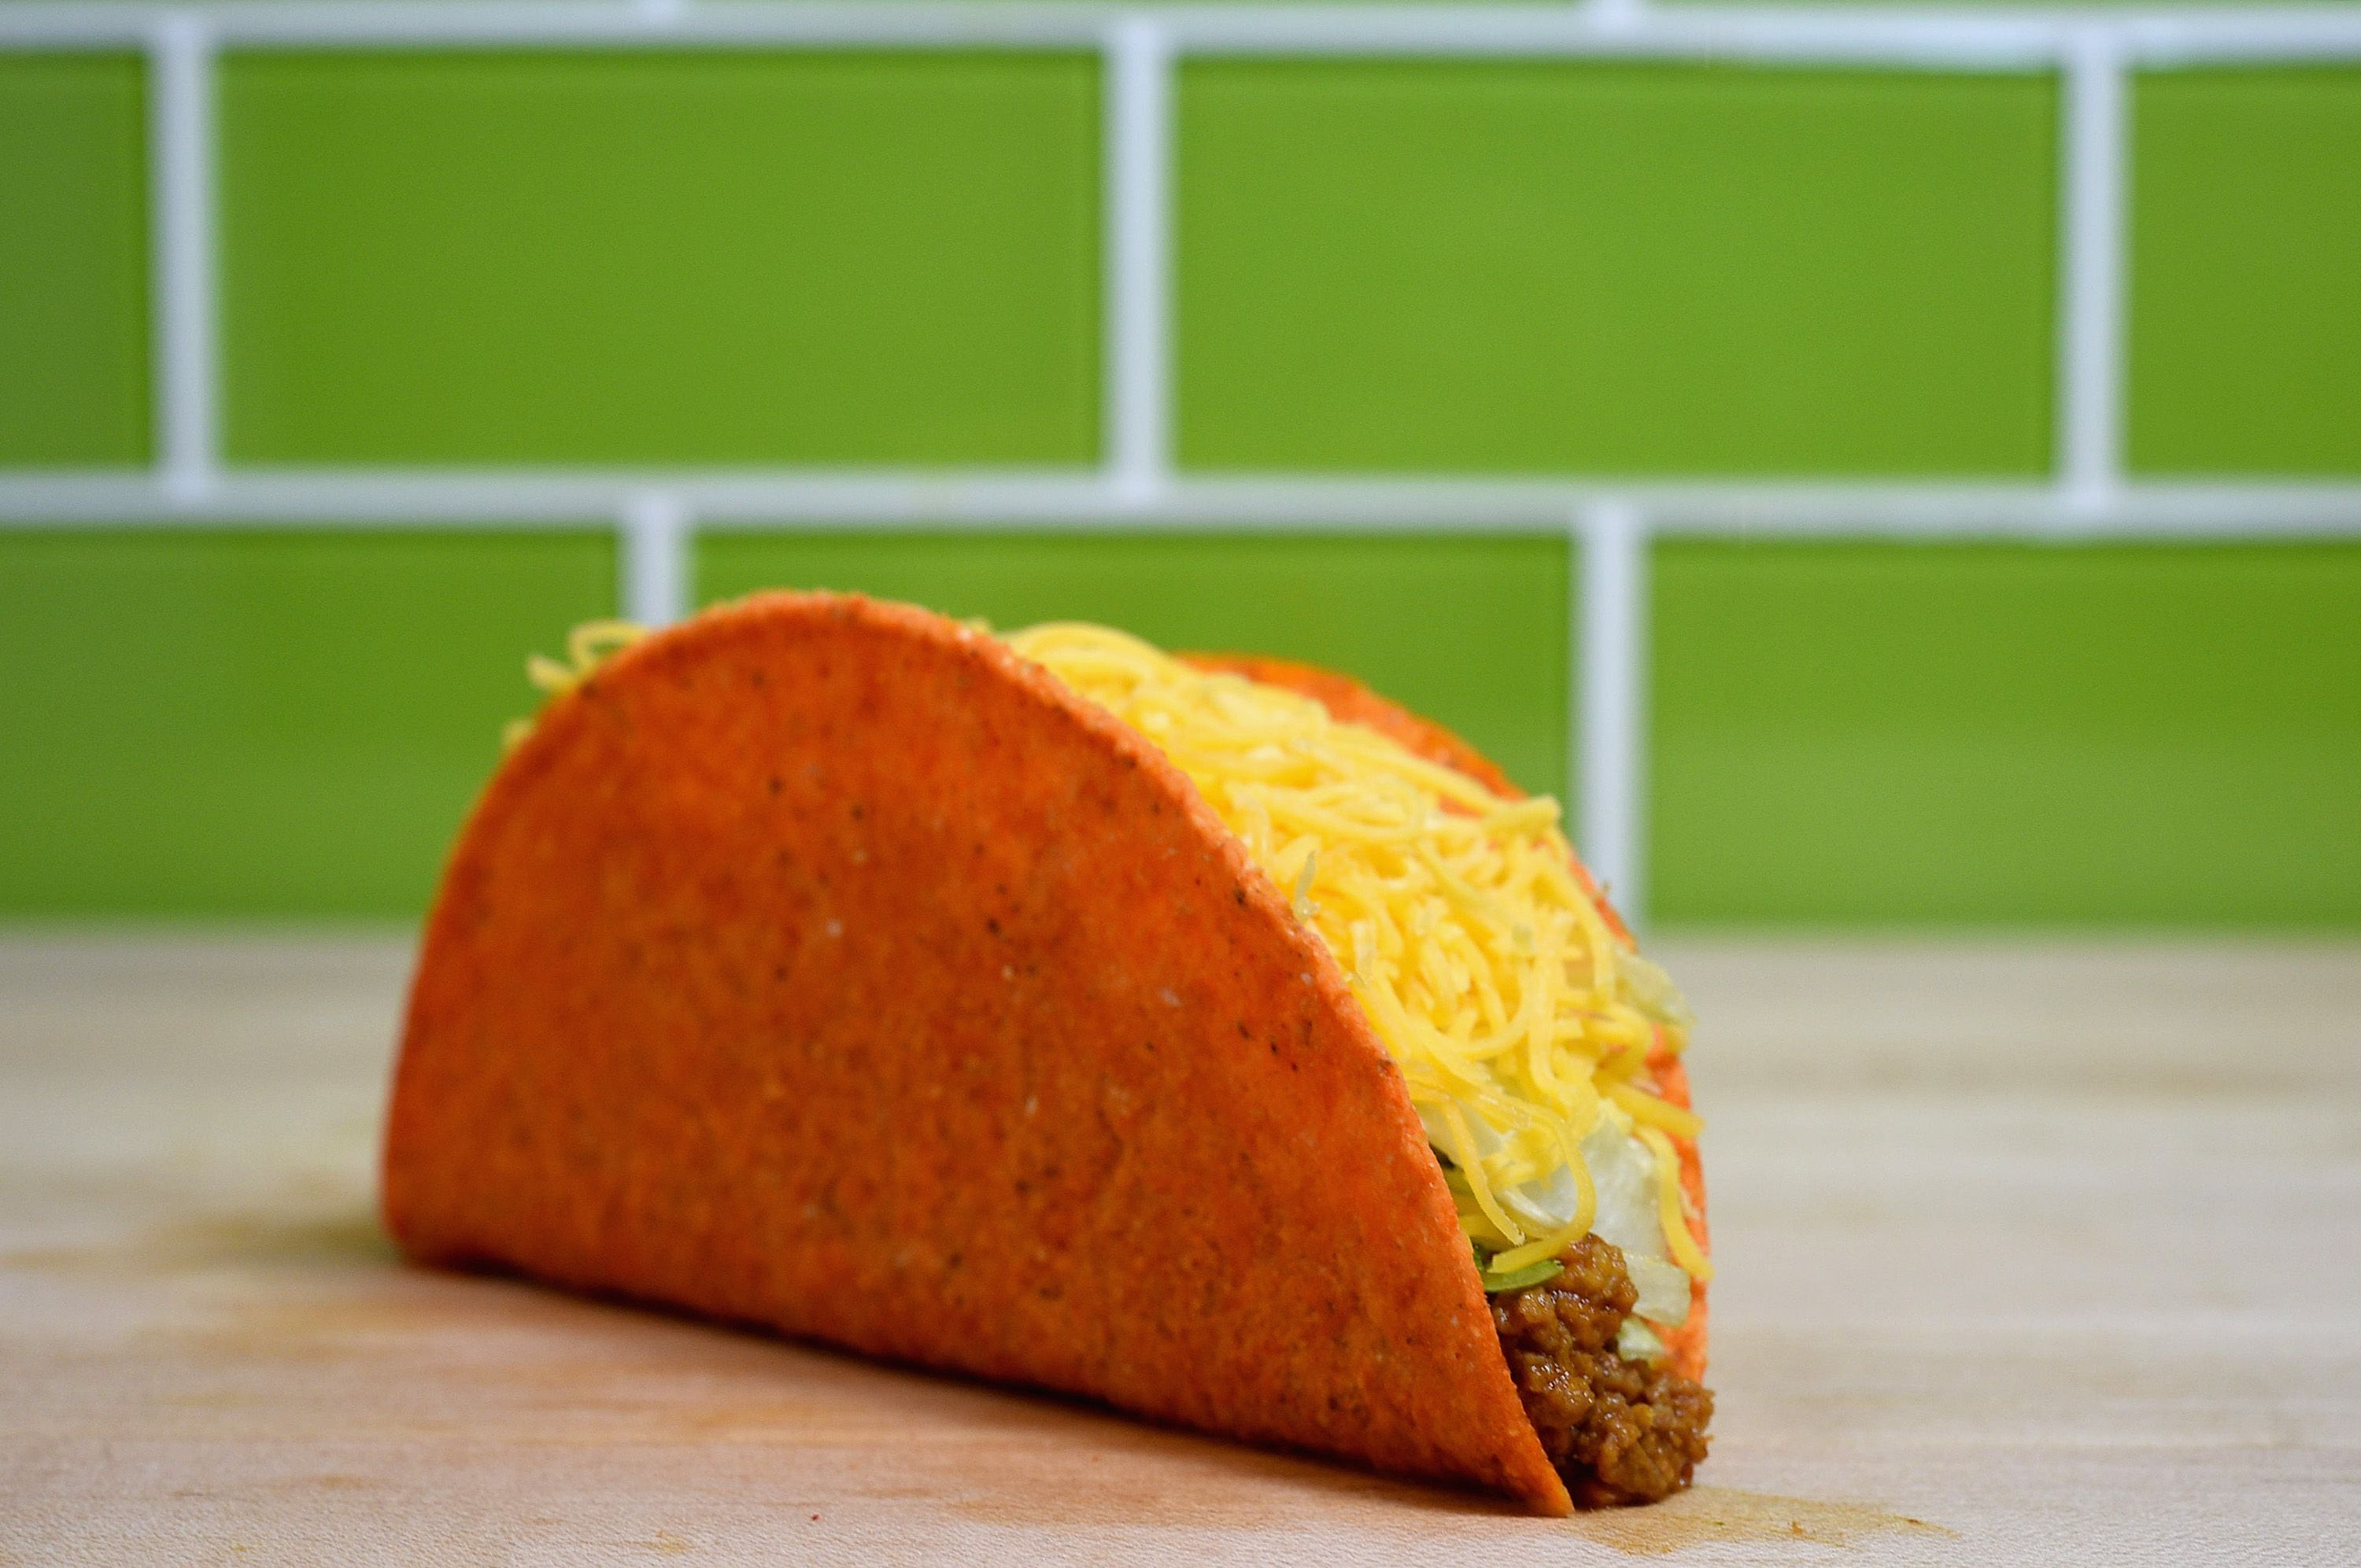 Taco bell breakfast giveaway sweepstakes